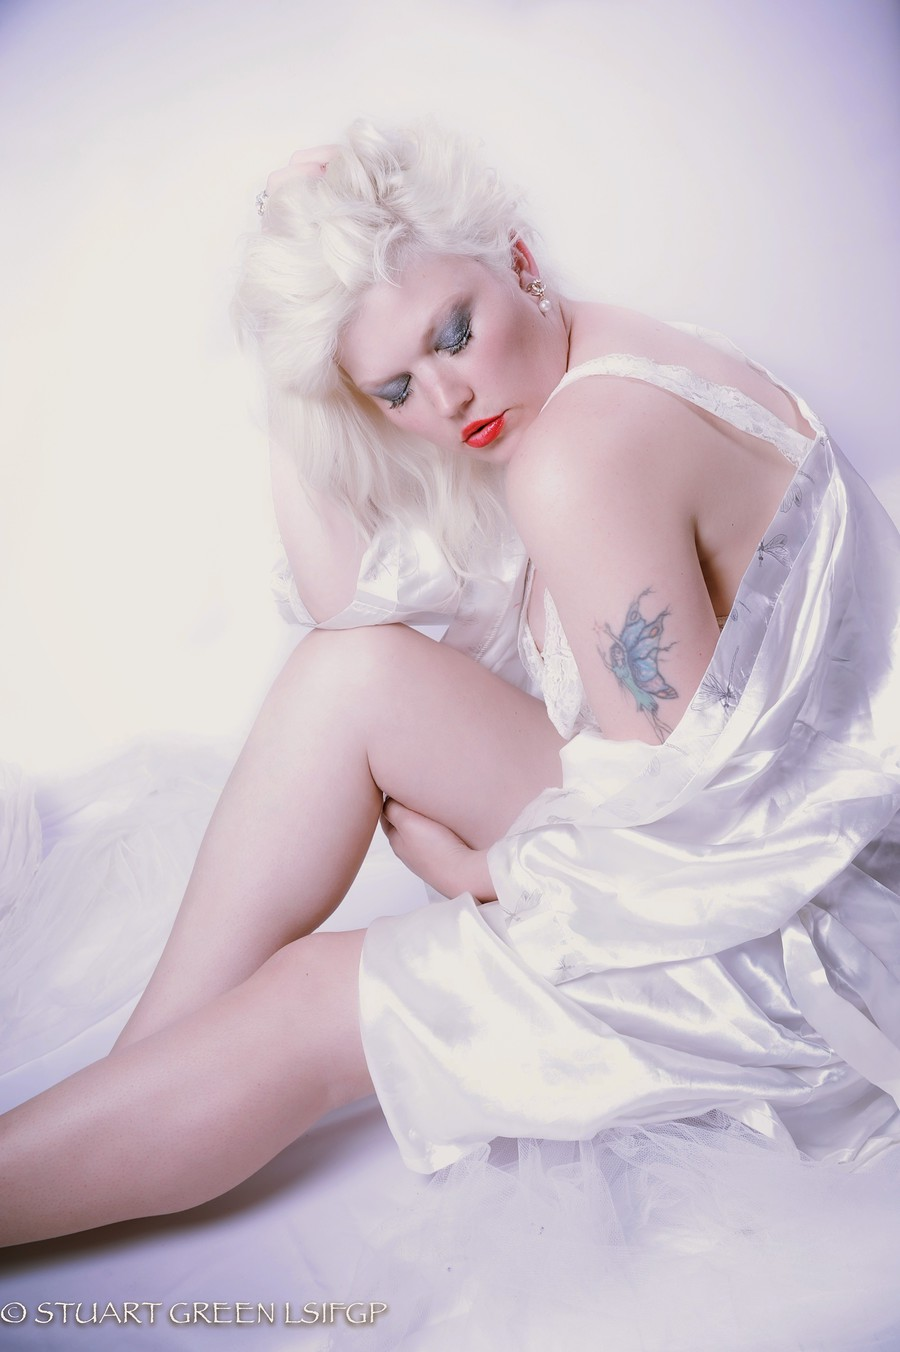 soft / Photography by Stuart Green-Photography, Model Lelly D / Uploaded 9th July 2014 @ 09:42 PM